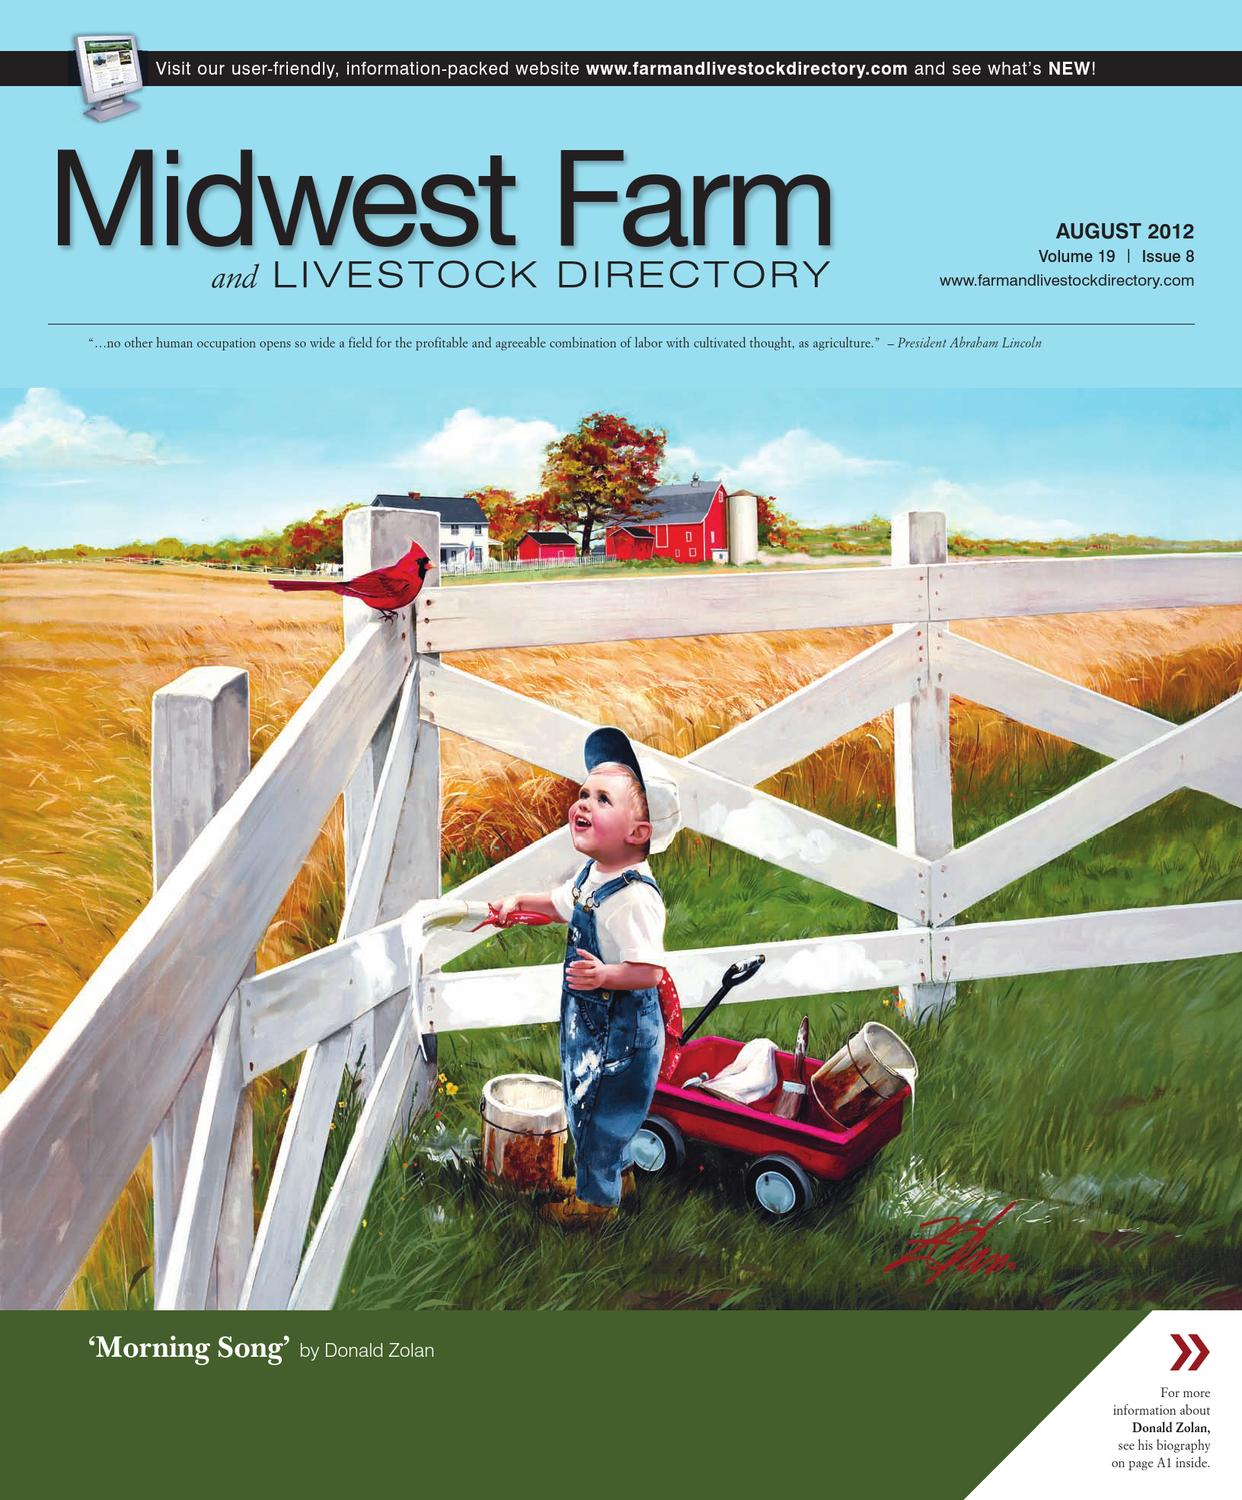 Midwest Farm And Livestock Directory Aug 2012 By Five Star Fld 120 Fuse Box Location Publishing Inc Issuu